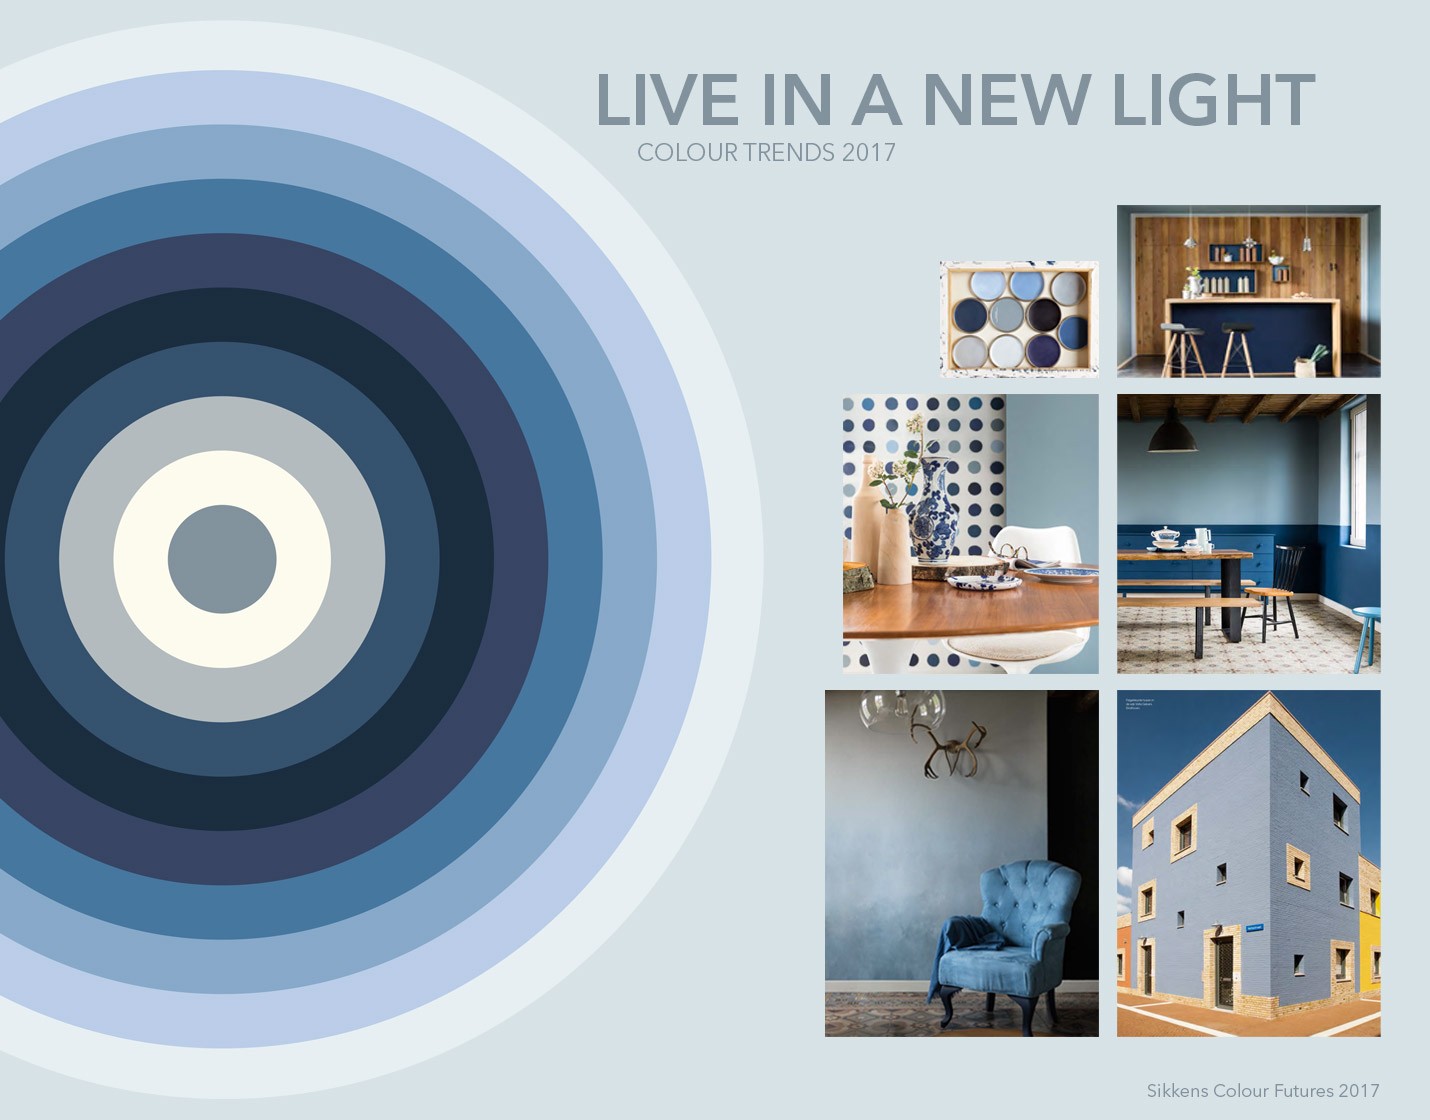 Archicolour - Live in a new light